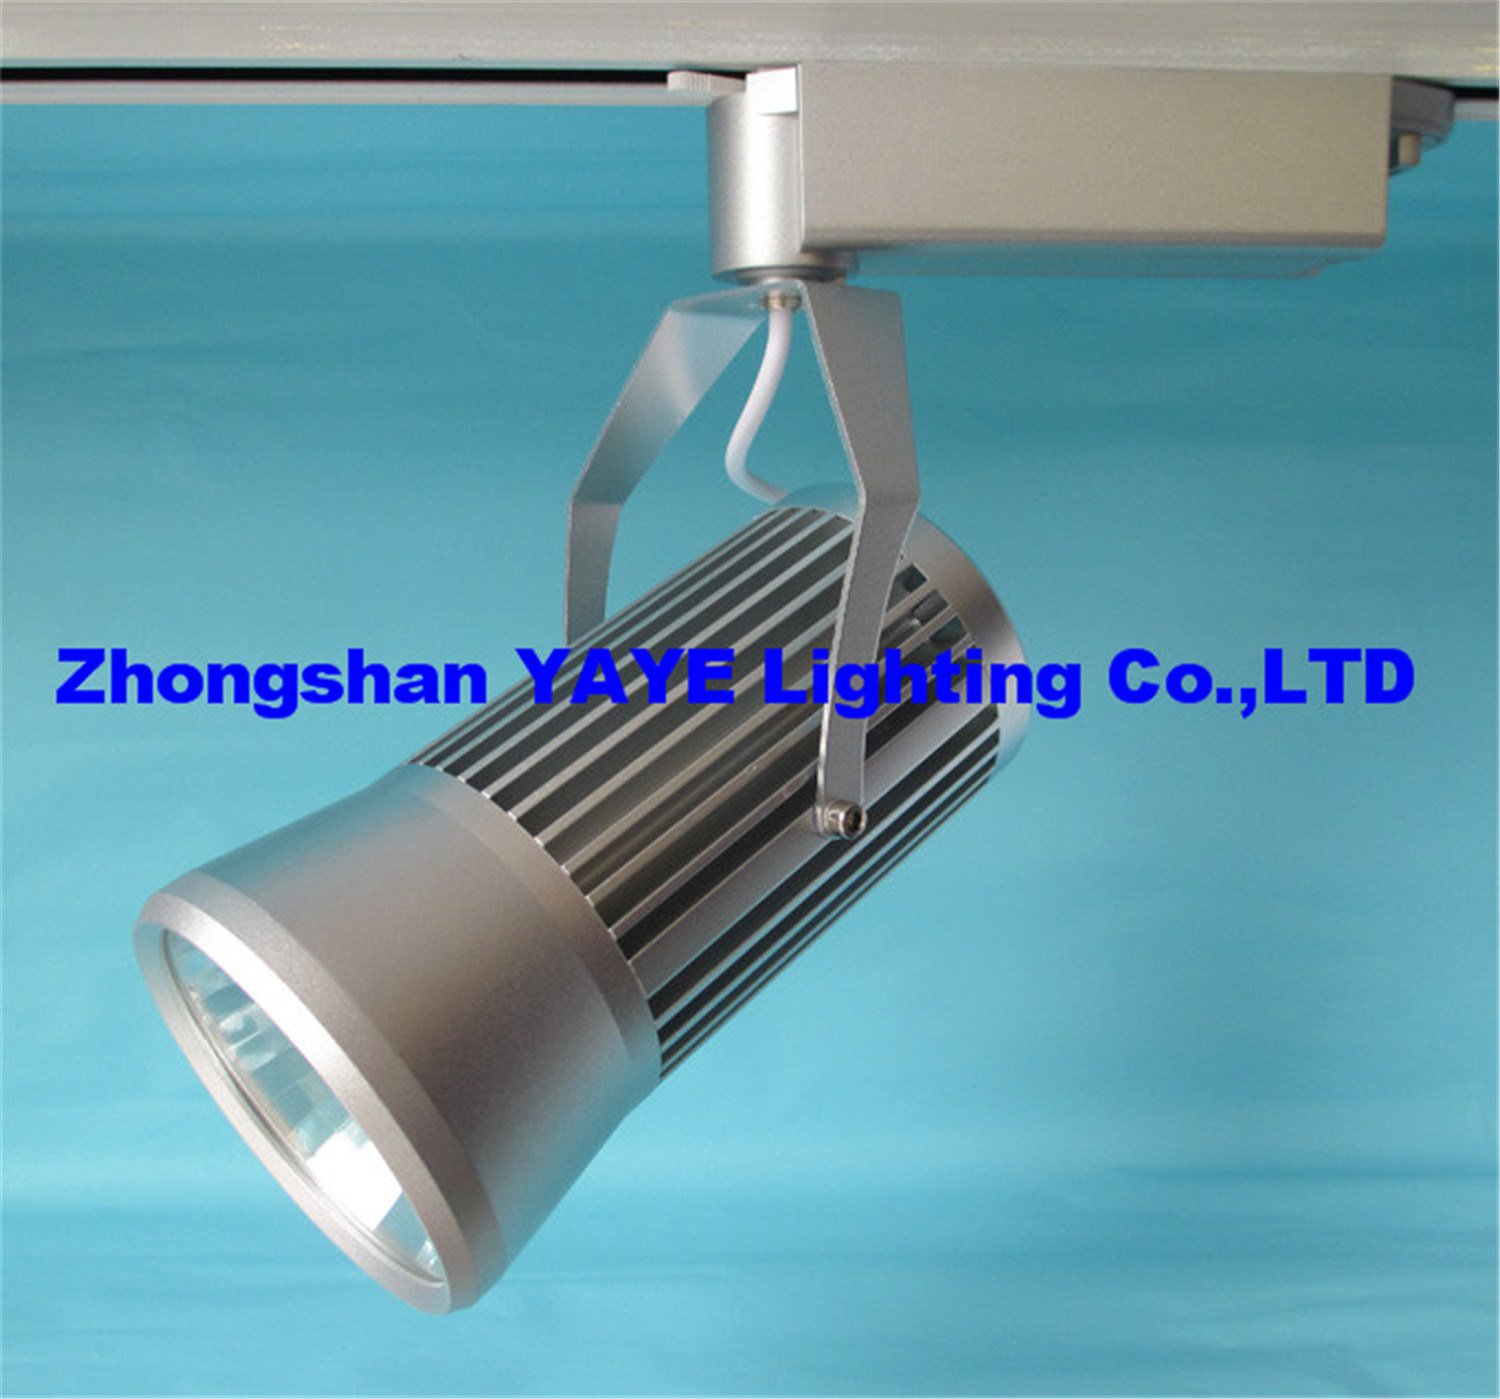 Hot item yaye hot sell competitive price cob 30w led track light with silver lamp body